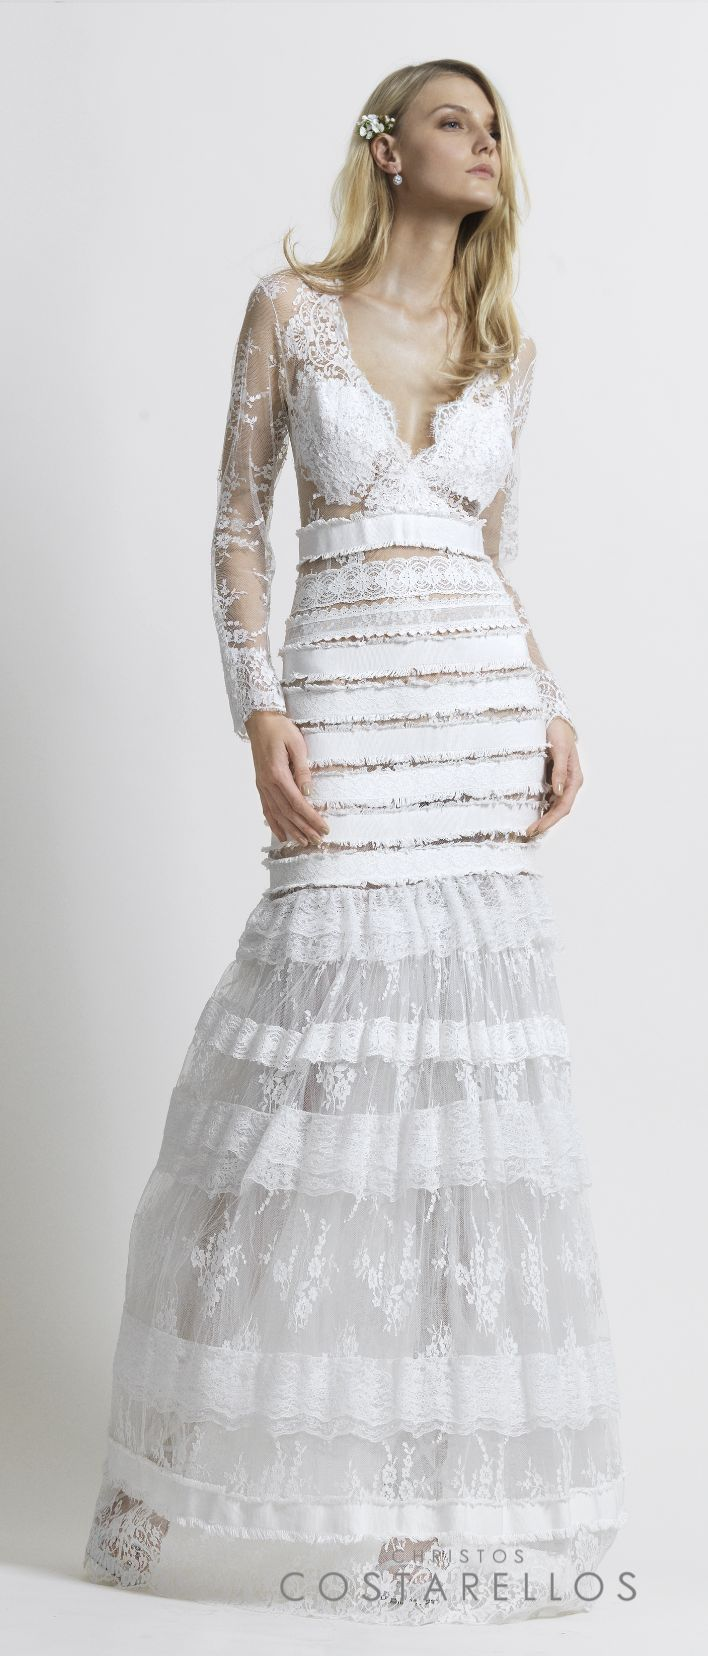 Christos Costarellos Bridal 2014 collection. Our 'BoHo' wedding dress with silk lace and 'cotton gross' stripes. Code: BR14 31. For stockists please visit www.costarellos.com #christoscostarellos #costarellos #costarellosbride #bridaldress #bridalgown #weddingdress #weddinggown #lace #bridetobe #bridalmarket #bridalfashion #wedding